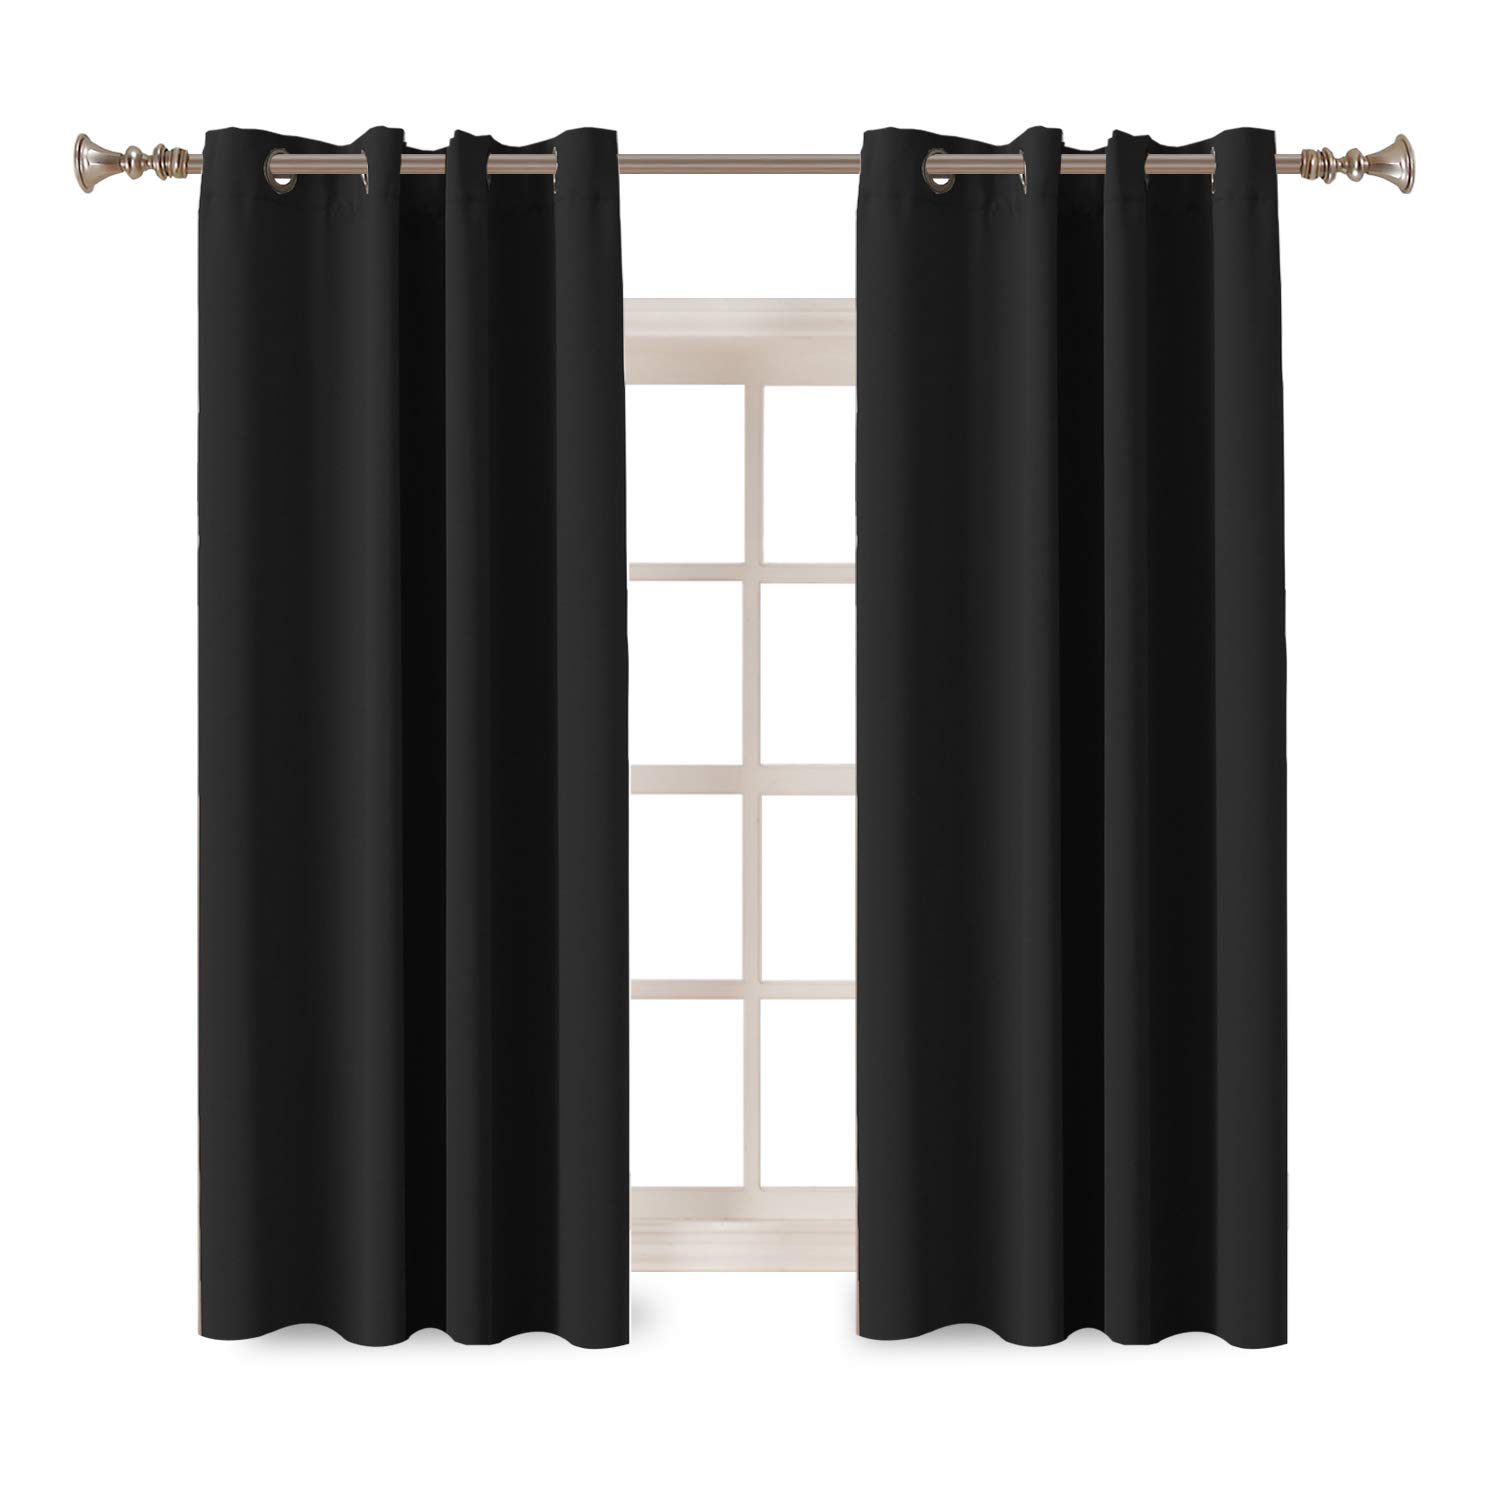 Turquoize Room Darkening Thermal Insulated Blackout Grommet Window Curtain for Living Room, Black,52x63-inch,2 Panel